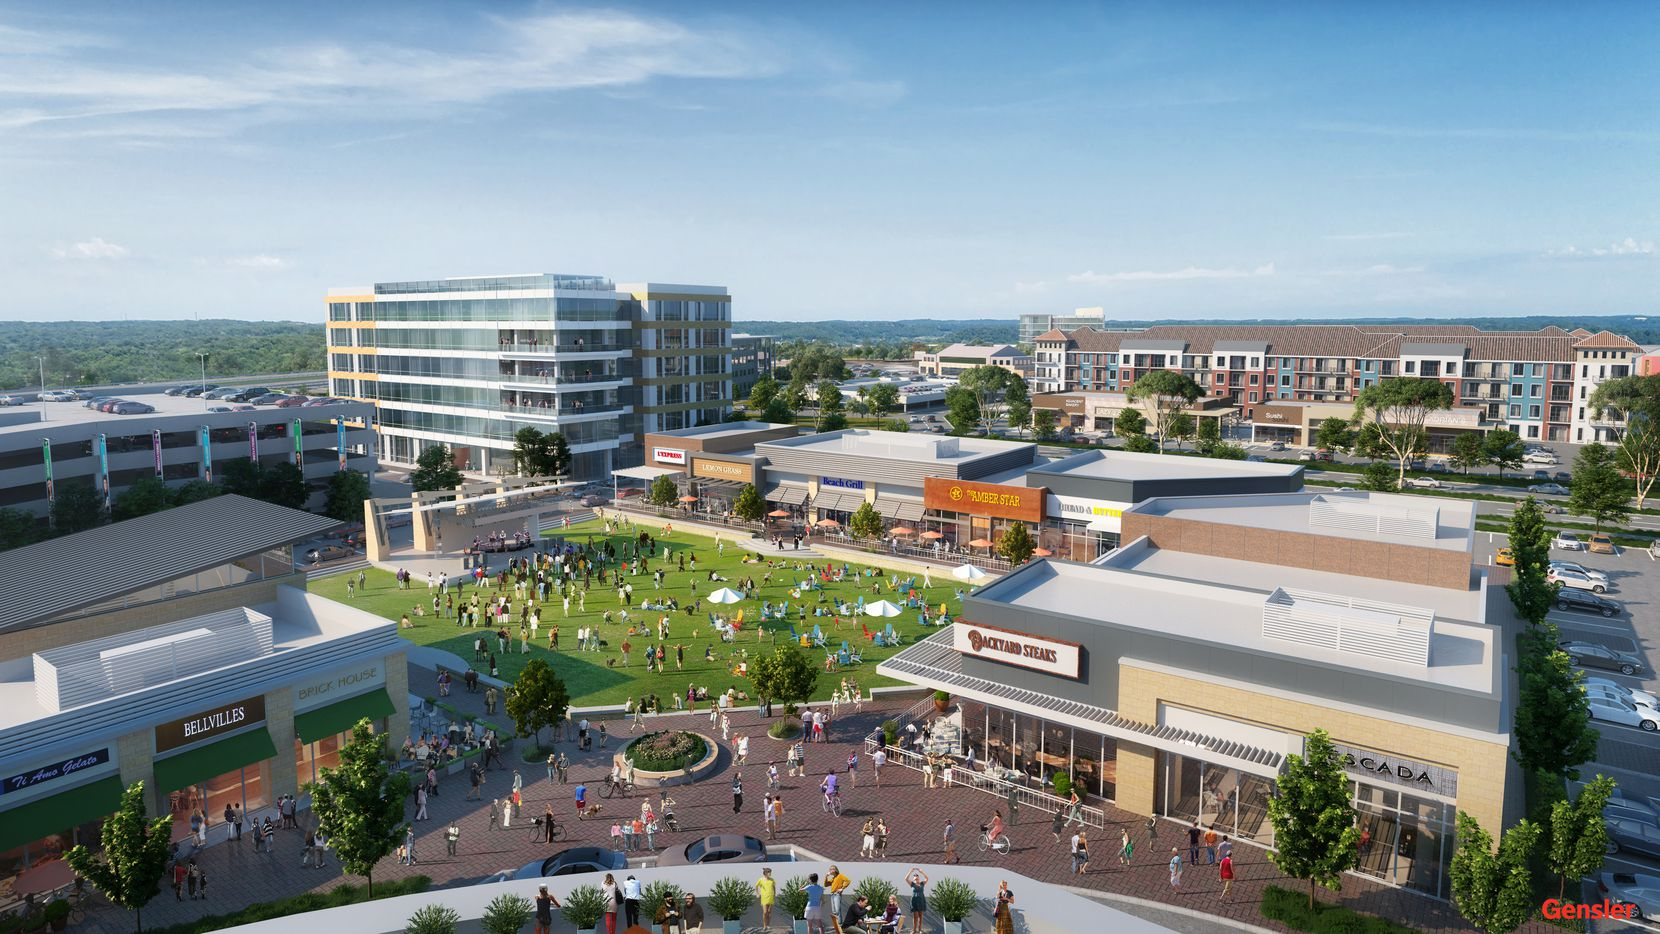 The 18-acre District 121 mixed-use development is planned at S.H. 121 and Alma Road in McKinney.